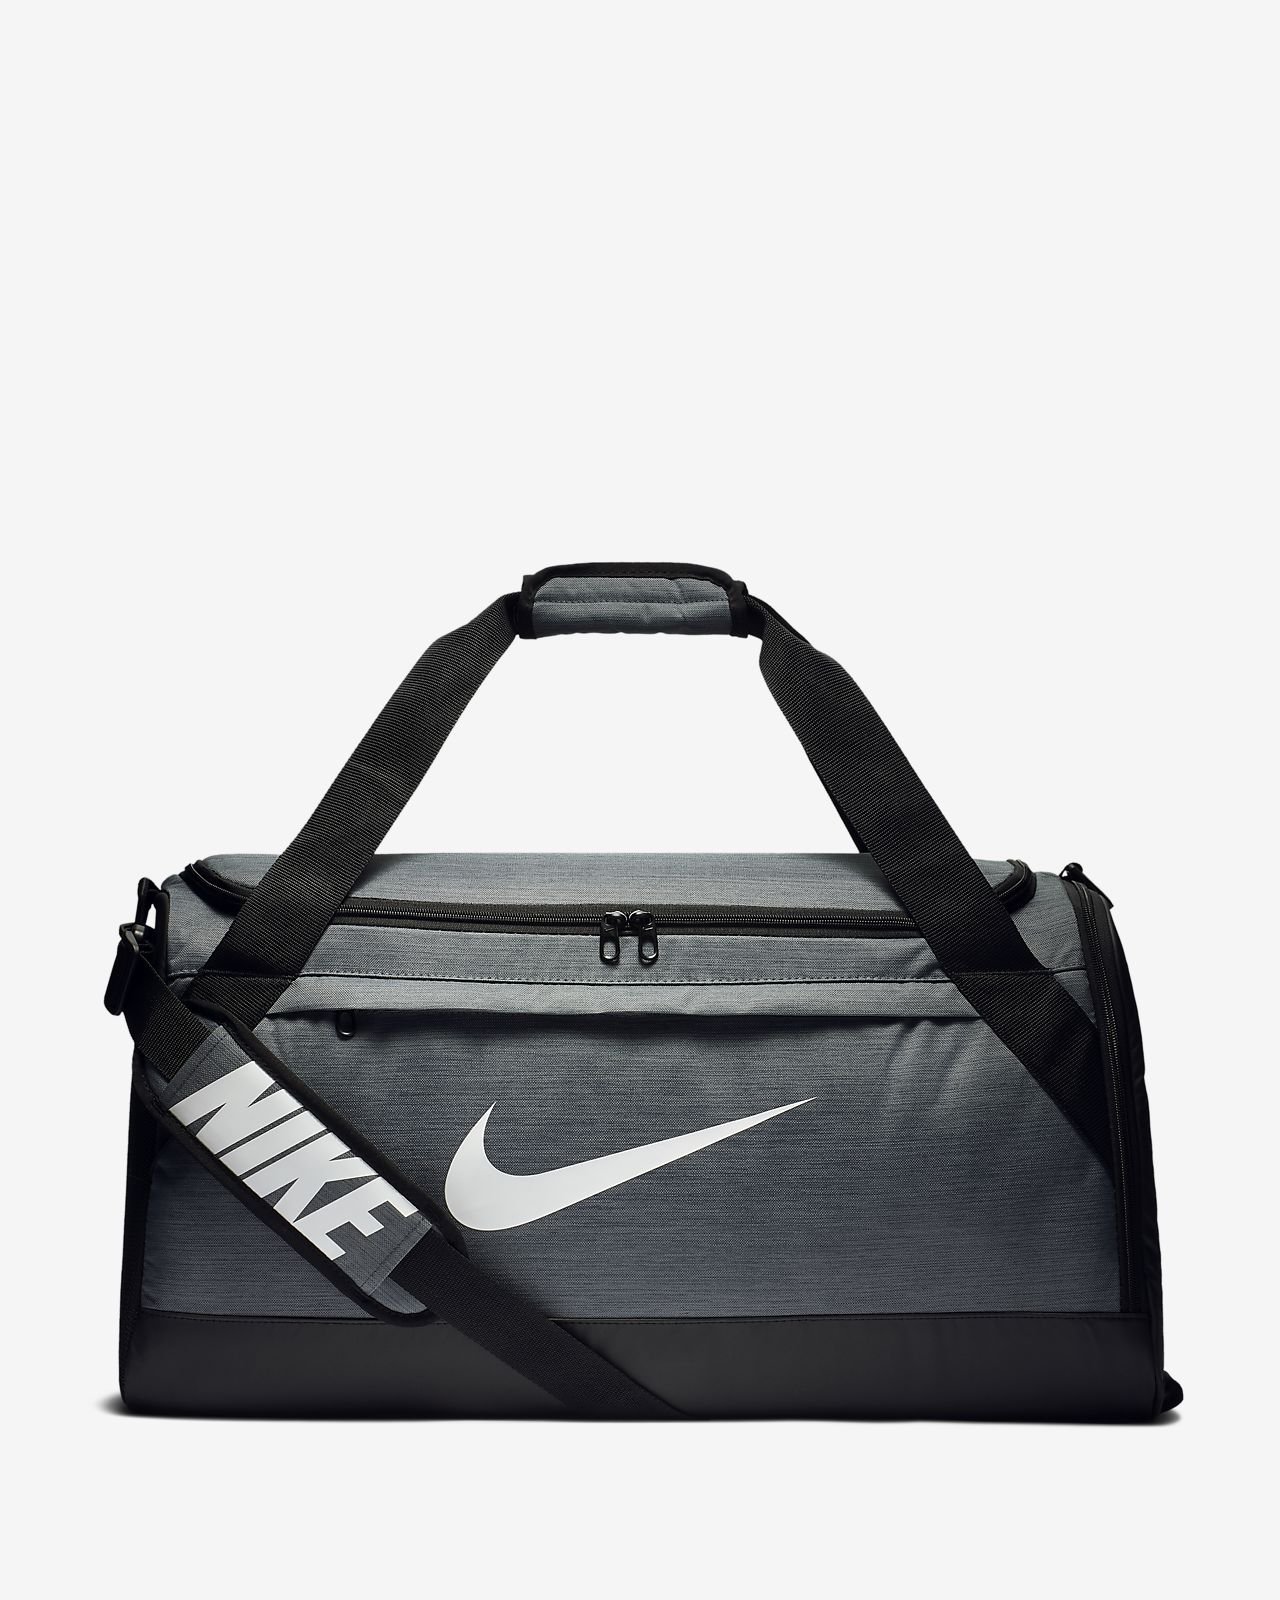 fd86177213a0 Nike Brasilia Training Duffel Bag (Medium). Nike.com